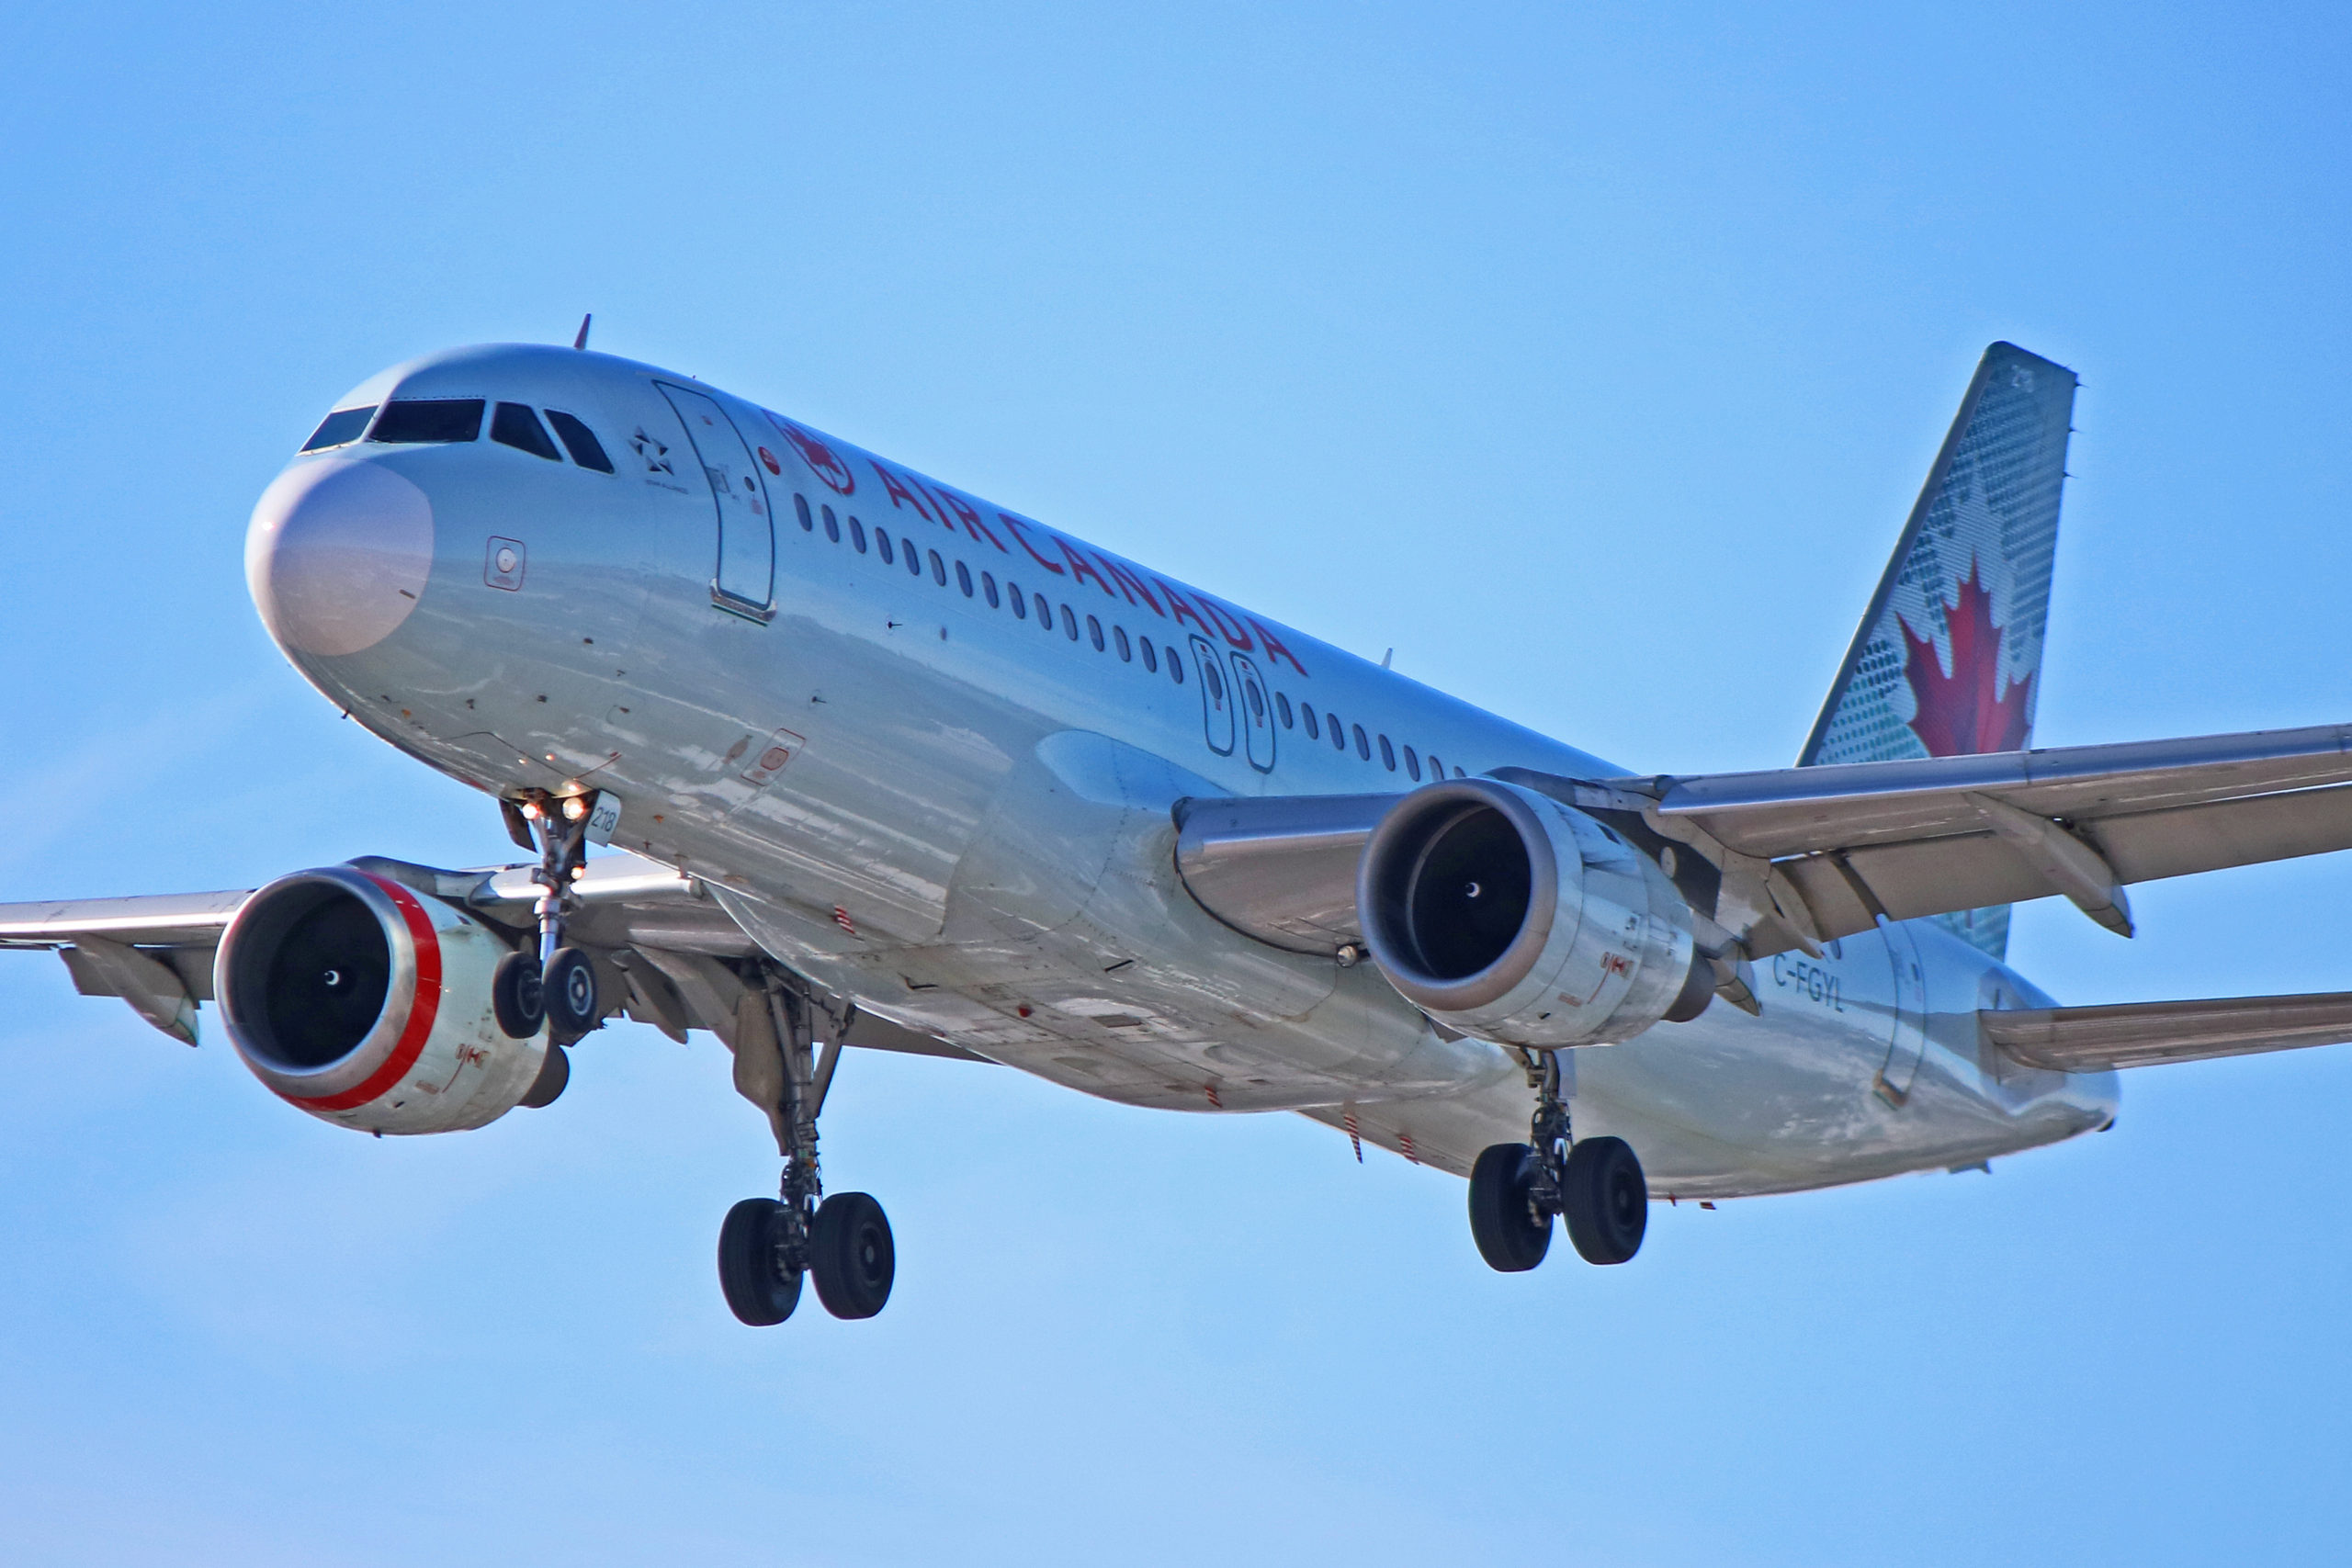 C-FGYL: Air Canada Airbus A320-200 (Nearing 30 Years In